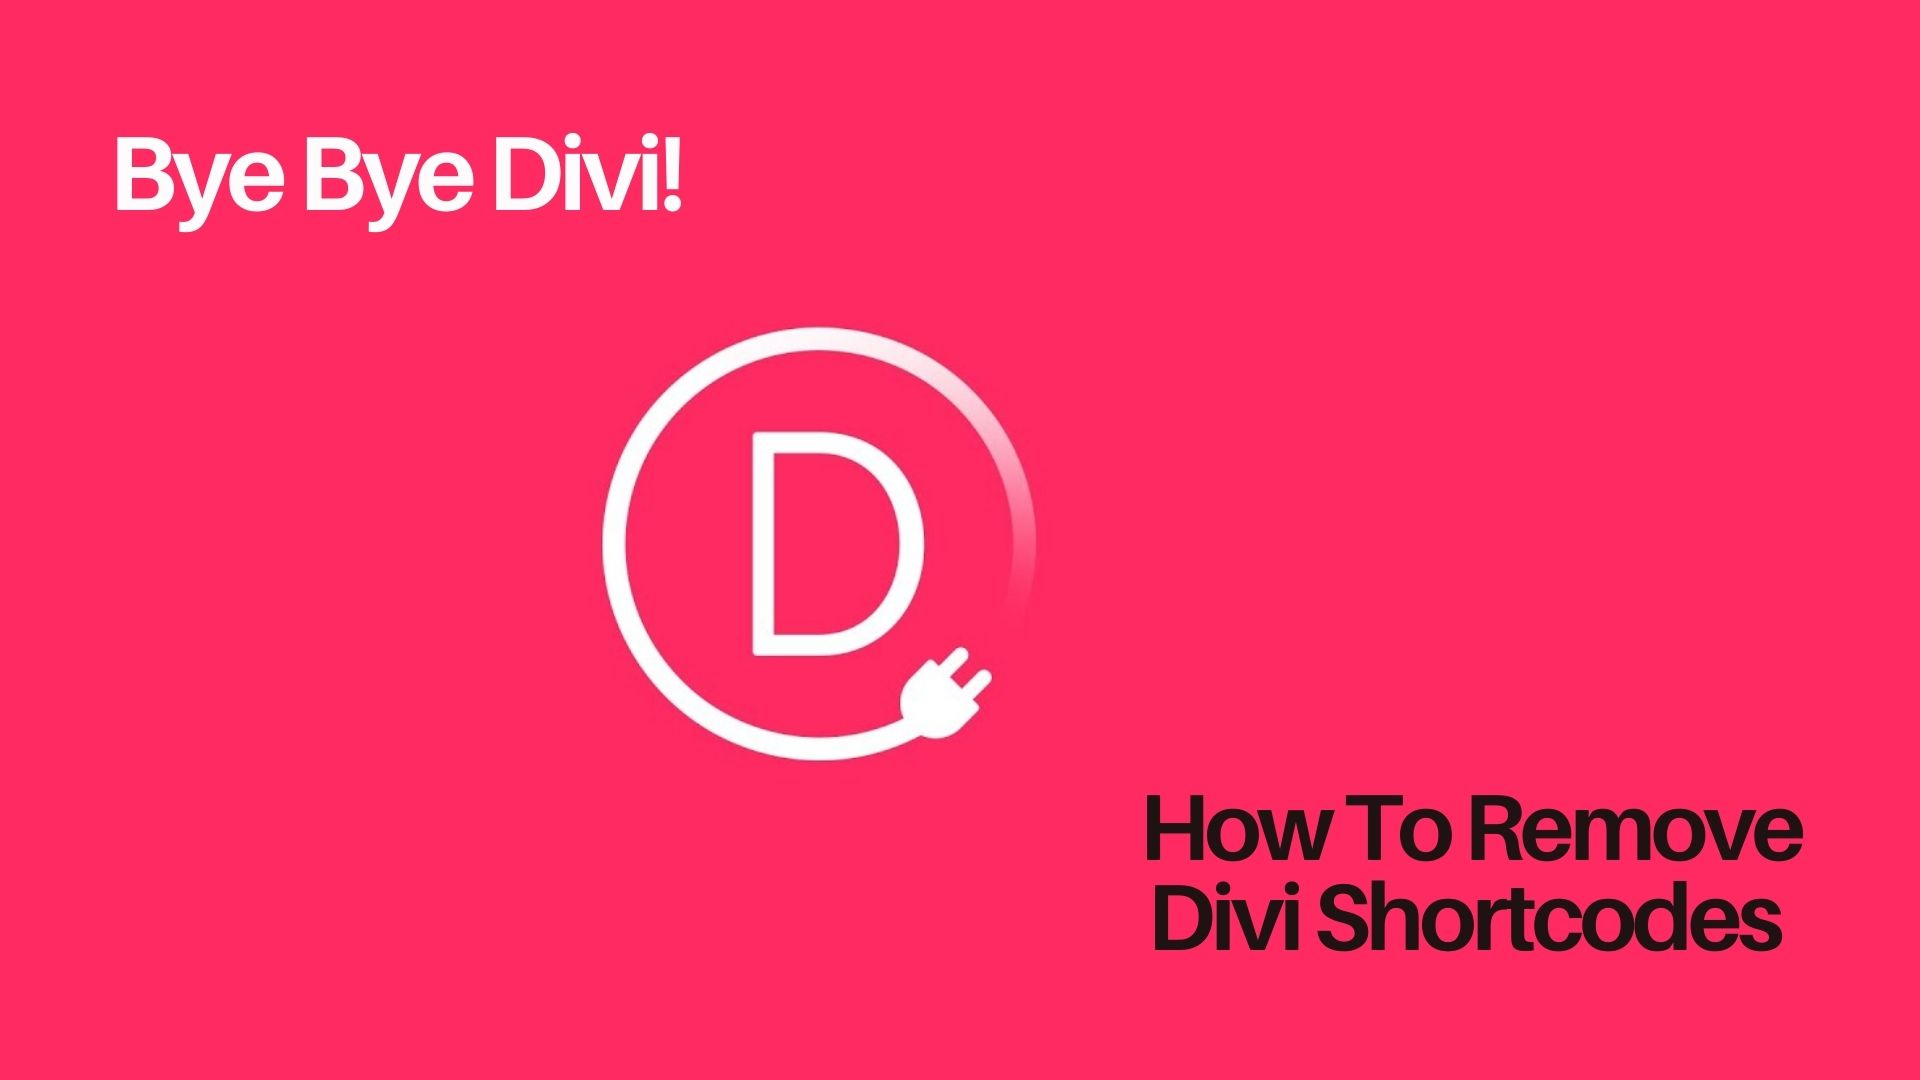 How to Remove Divi Shortcodes using the Bye Bye Divi!